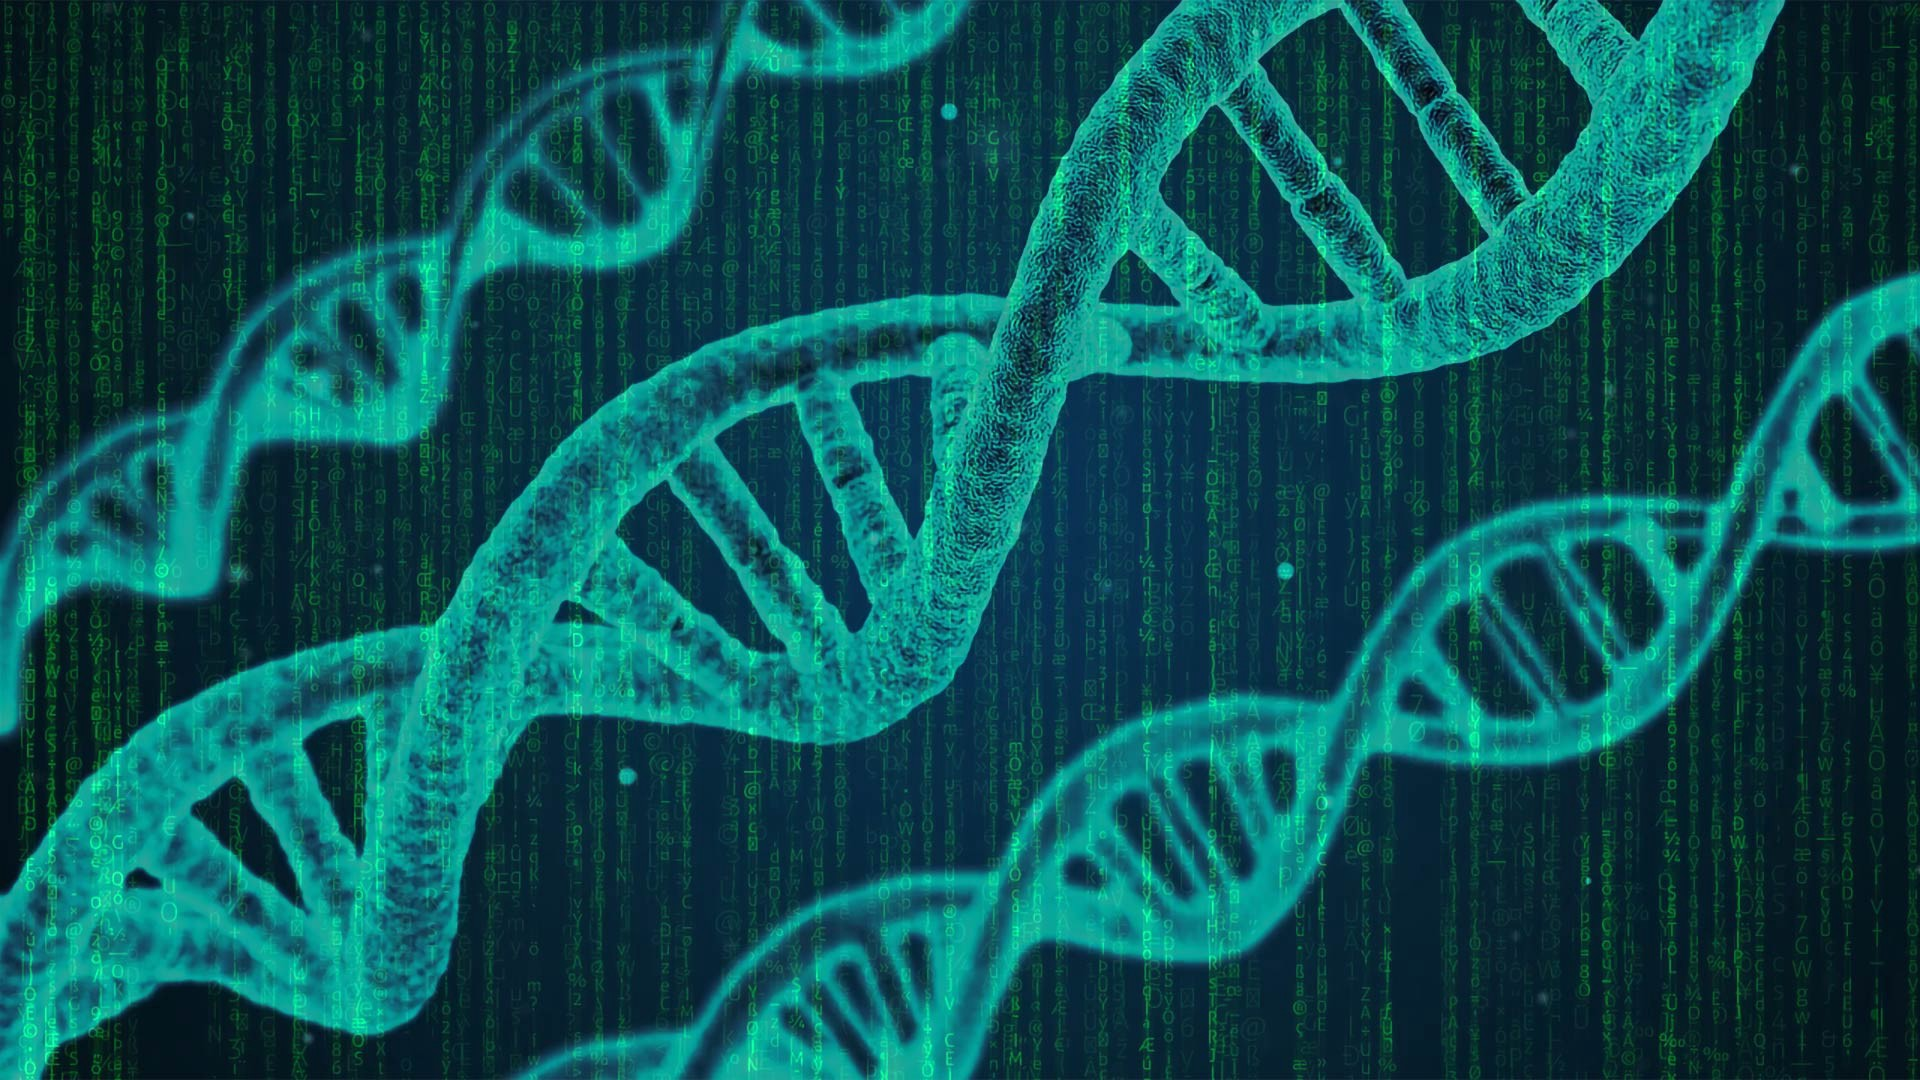 Illustration of a genetic algorithm (GA), the picture shows a DNA strain, along with a matrix background